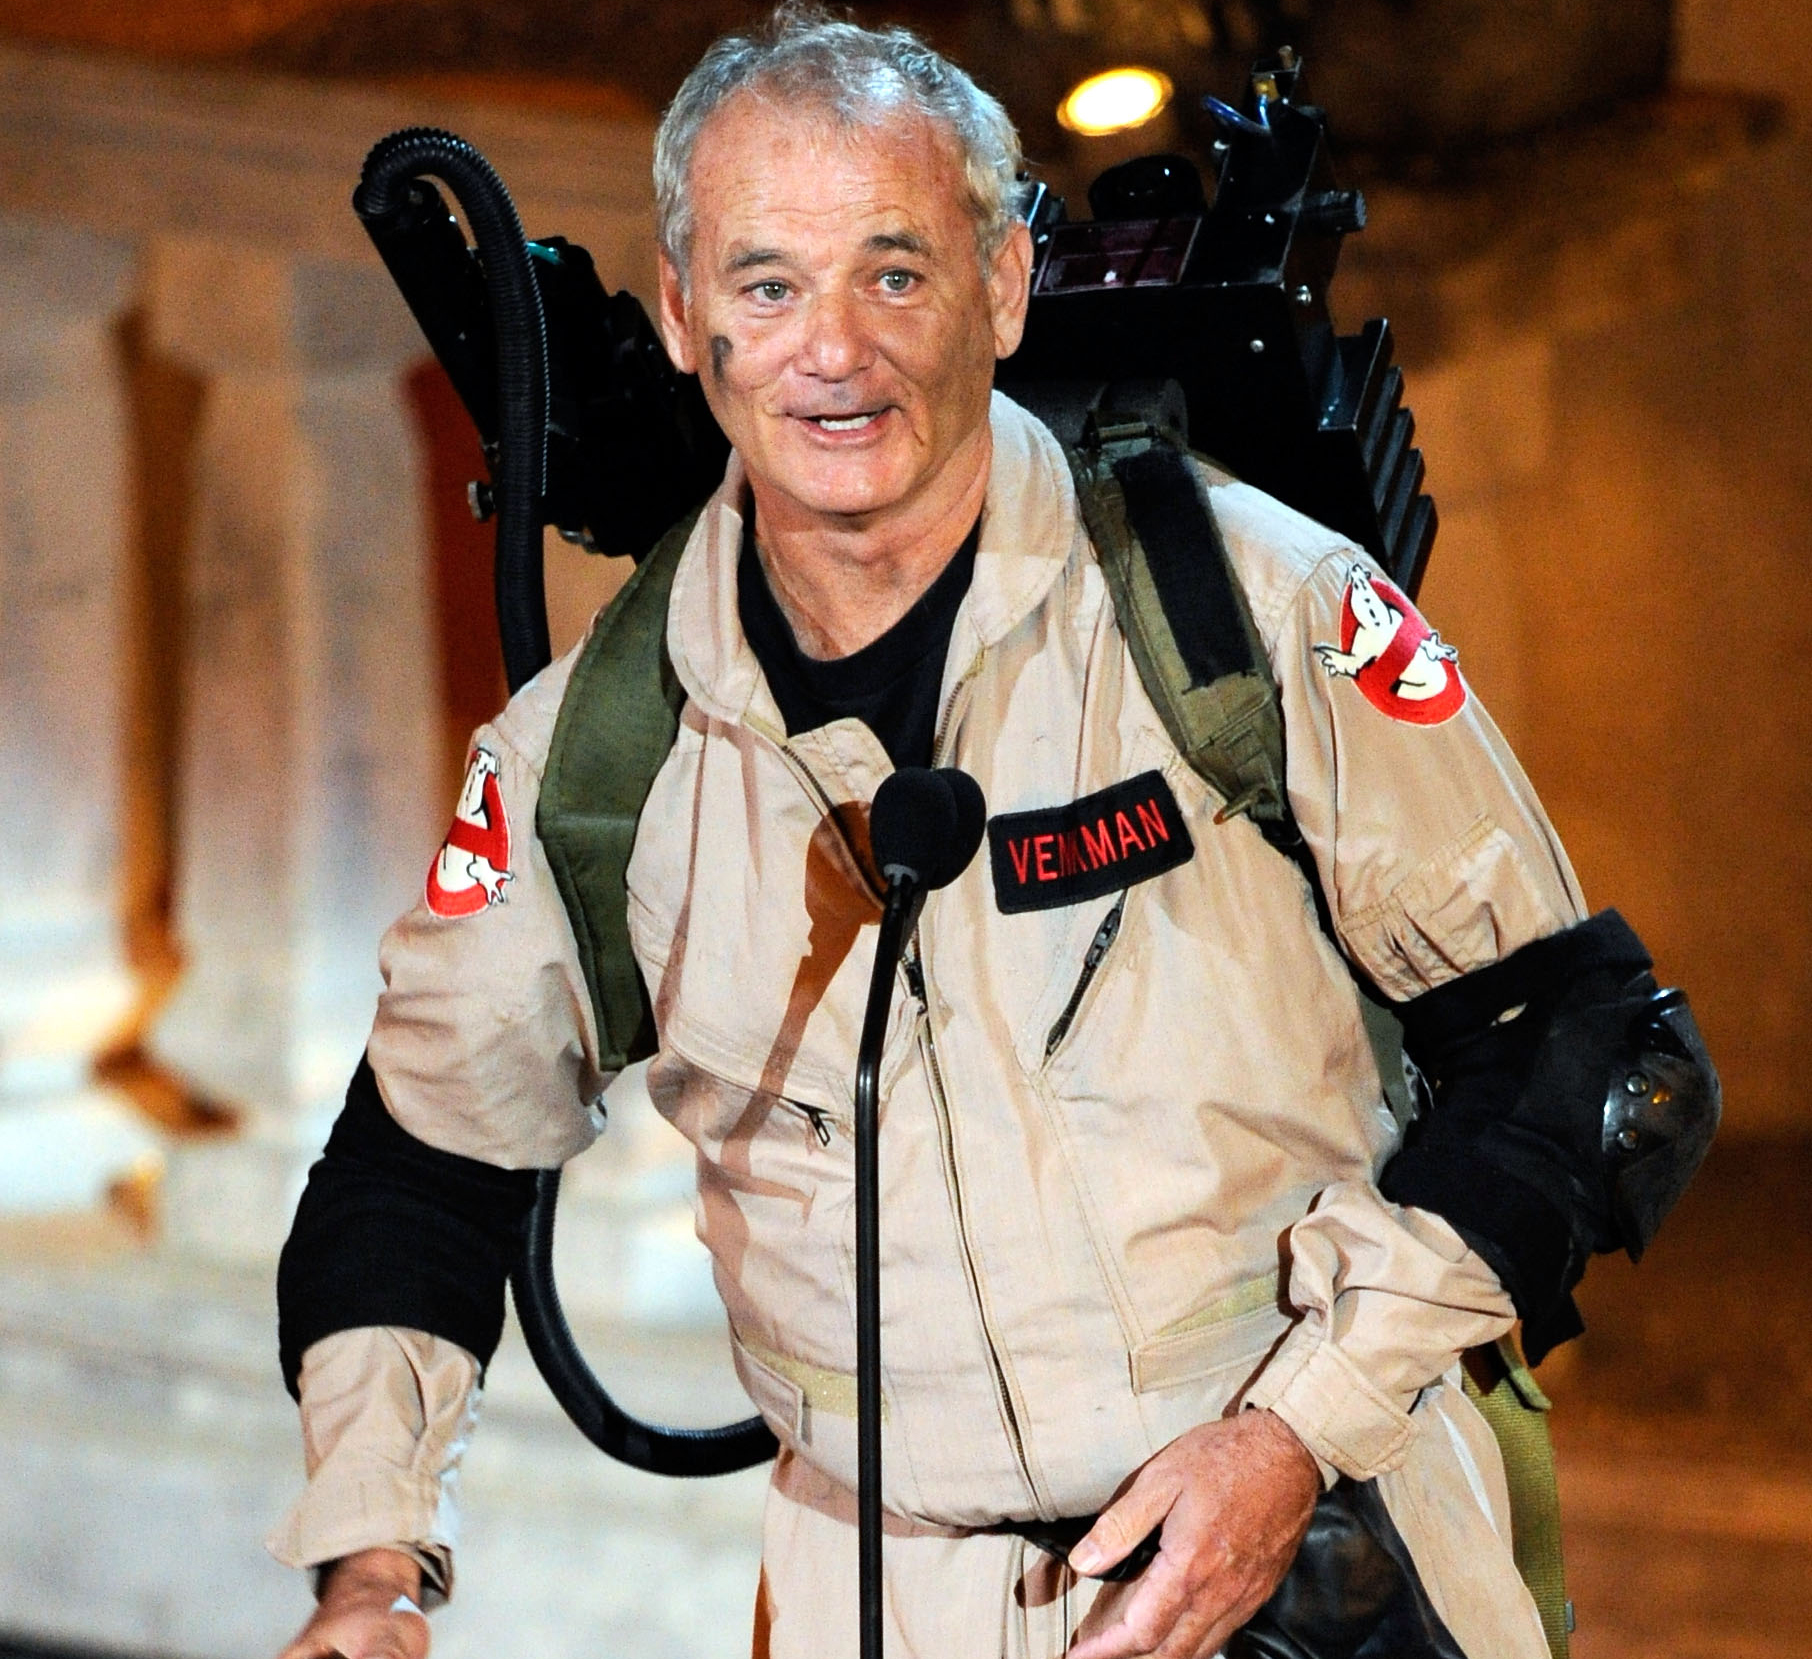 bill murray hd wallpaper - photo #33